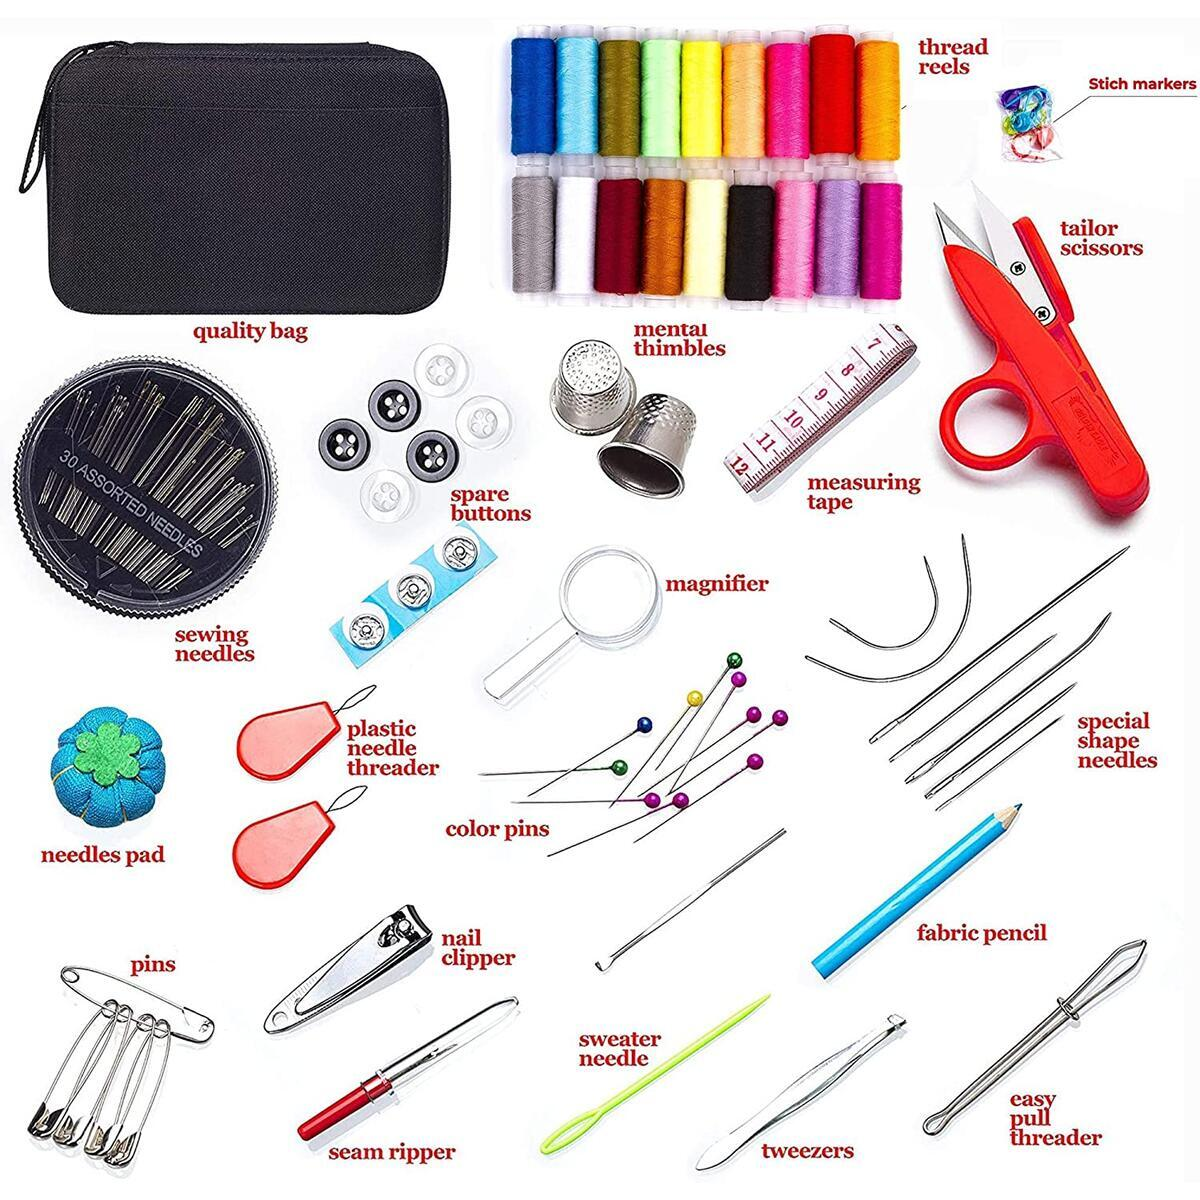 MYFOXI Sewing Kit for Adults, Kids, Travel, Home, Sew Repair - 140pc Accessories Mini Set in Zippered Soft Cloth Pouch with Thread and Needle, Stitch Ripper, Buttons, Safety Pins, Zippered Organizer